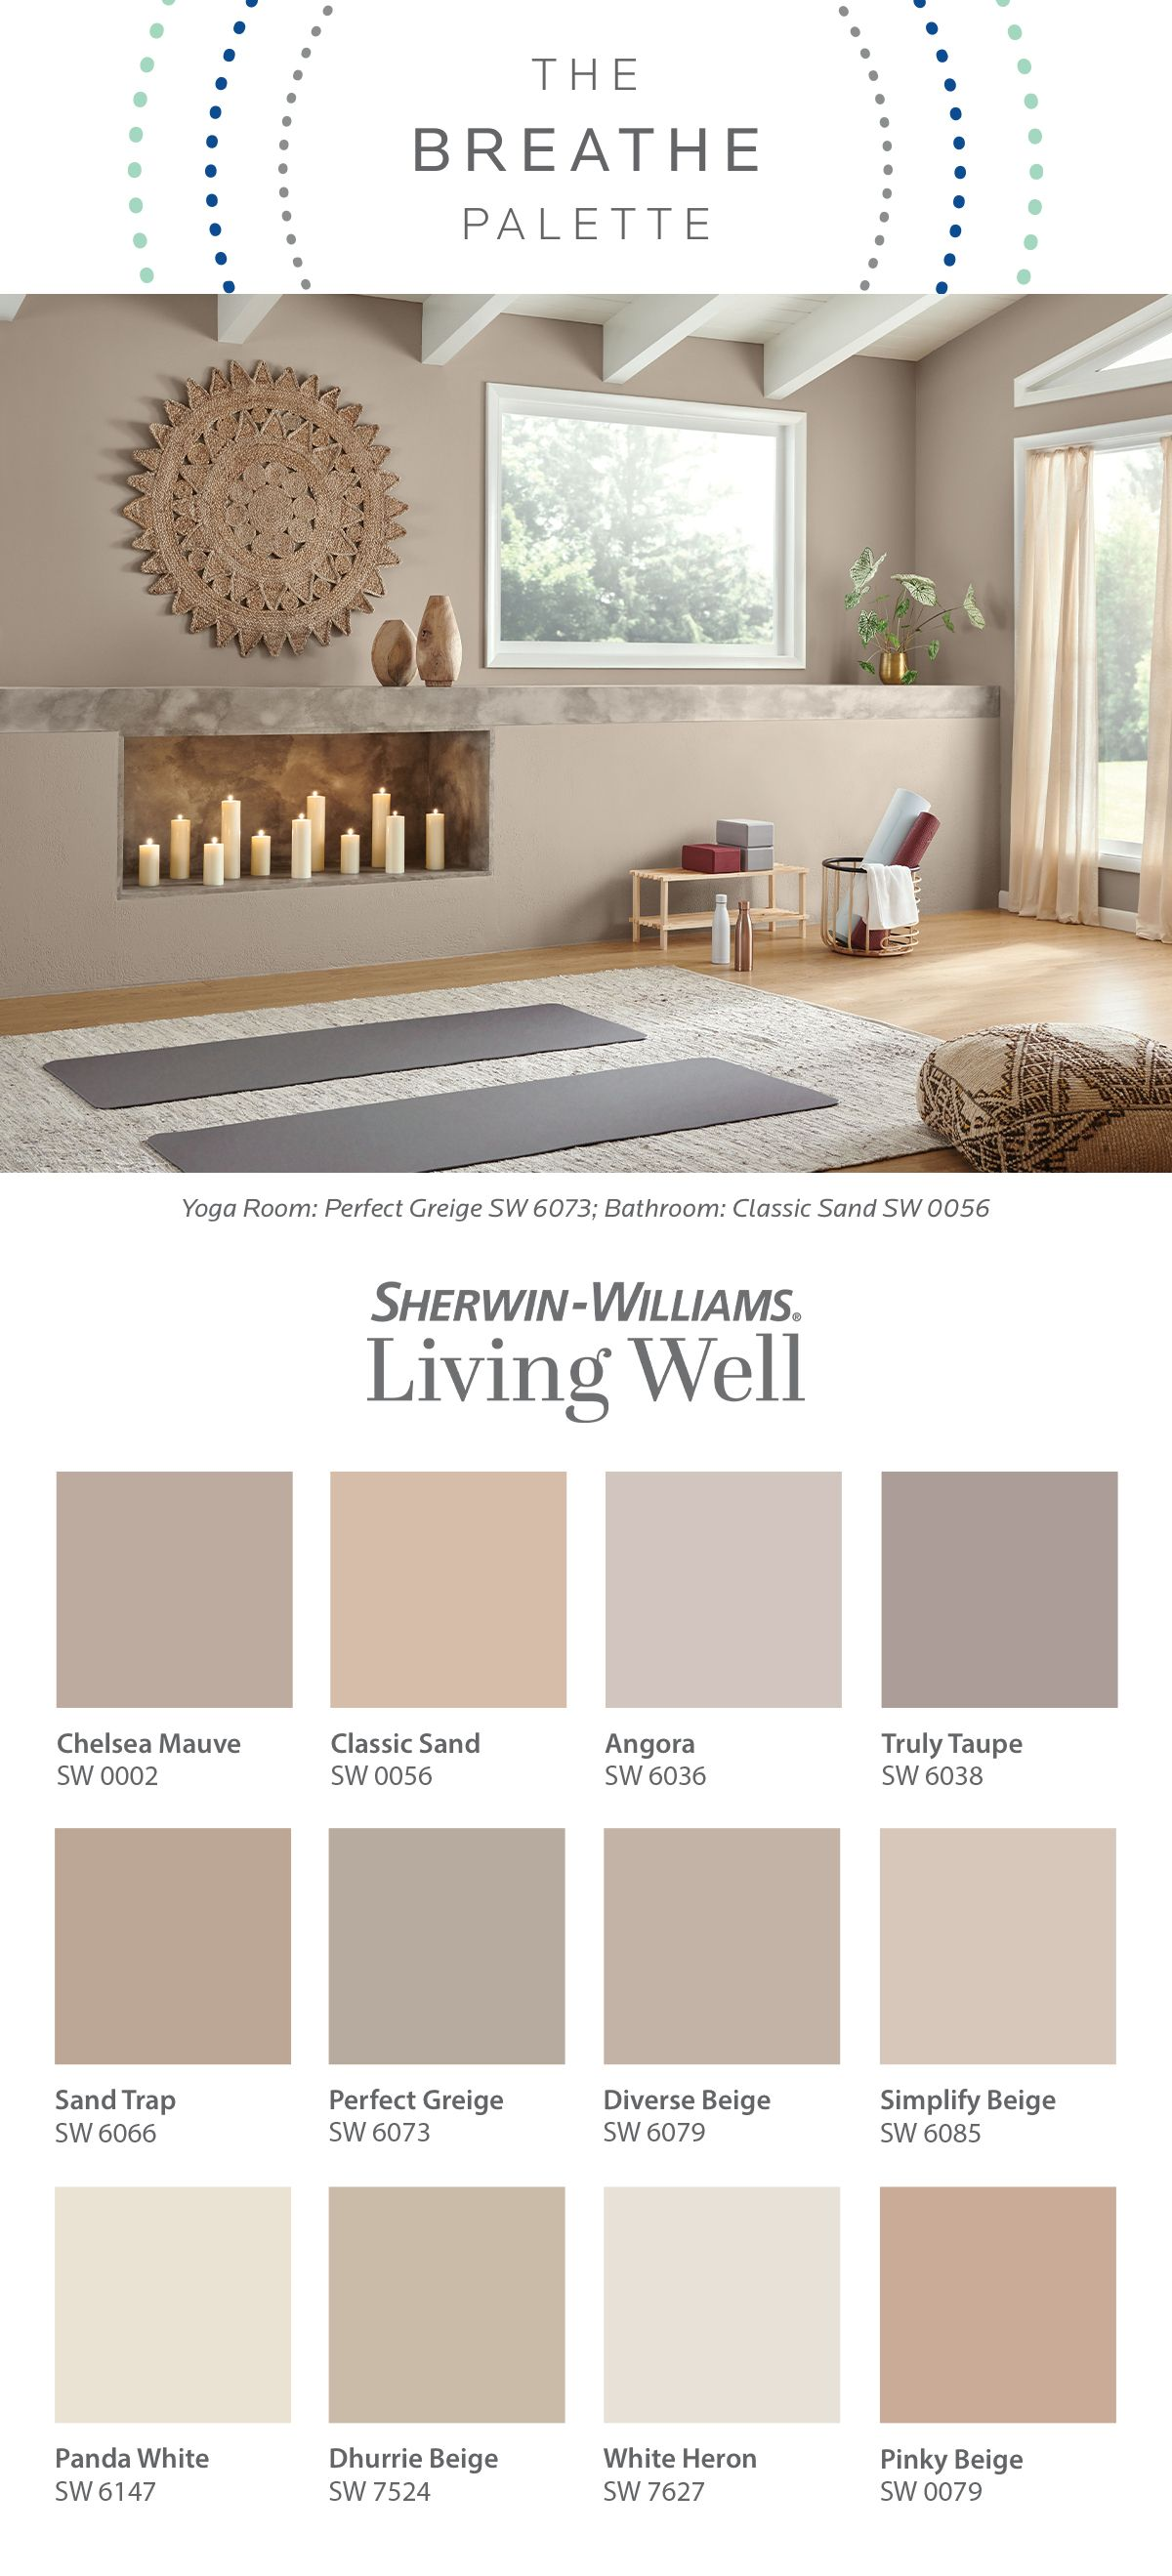 The Living Well Collection Breathe Palette In 2021 Paint Colors For Home Home Remodeling Warm Paint Colors Good neutral colors for living room